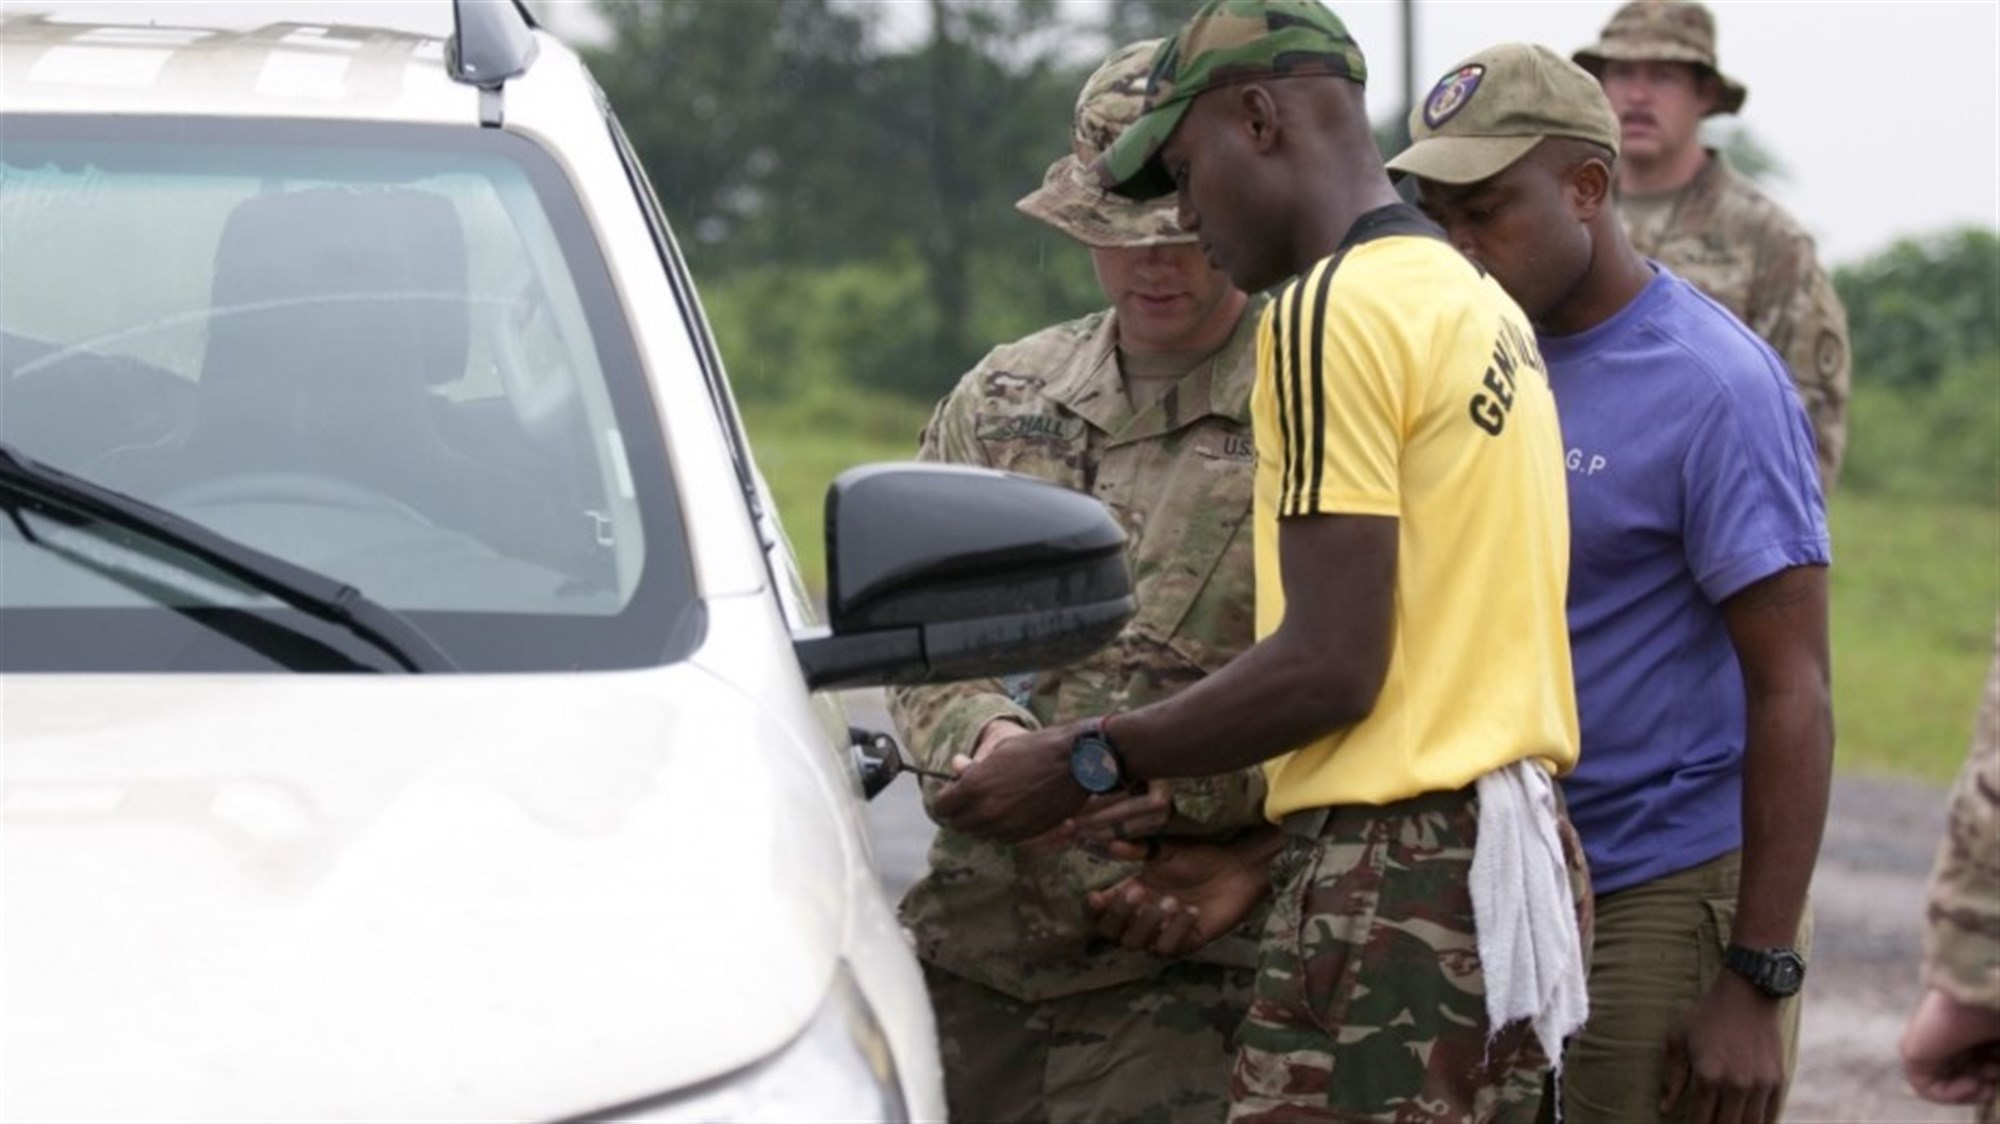 DOUALA, Cameroon --  Army 1st Lt. Jacob Schall, left, a platoon leader for the 764th Ordnance Company from Fort Carson, Colo., instructs Cameroonian troops how to handle vehicle-borne improvised explosive devices during Exercise Counter Improvised Explosive Device-Defeat Phase I in Douala, Cameroon, Nov. 15, 2017.